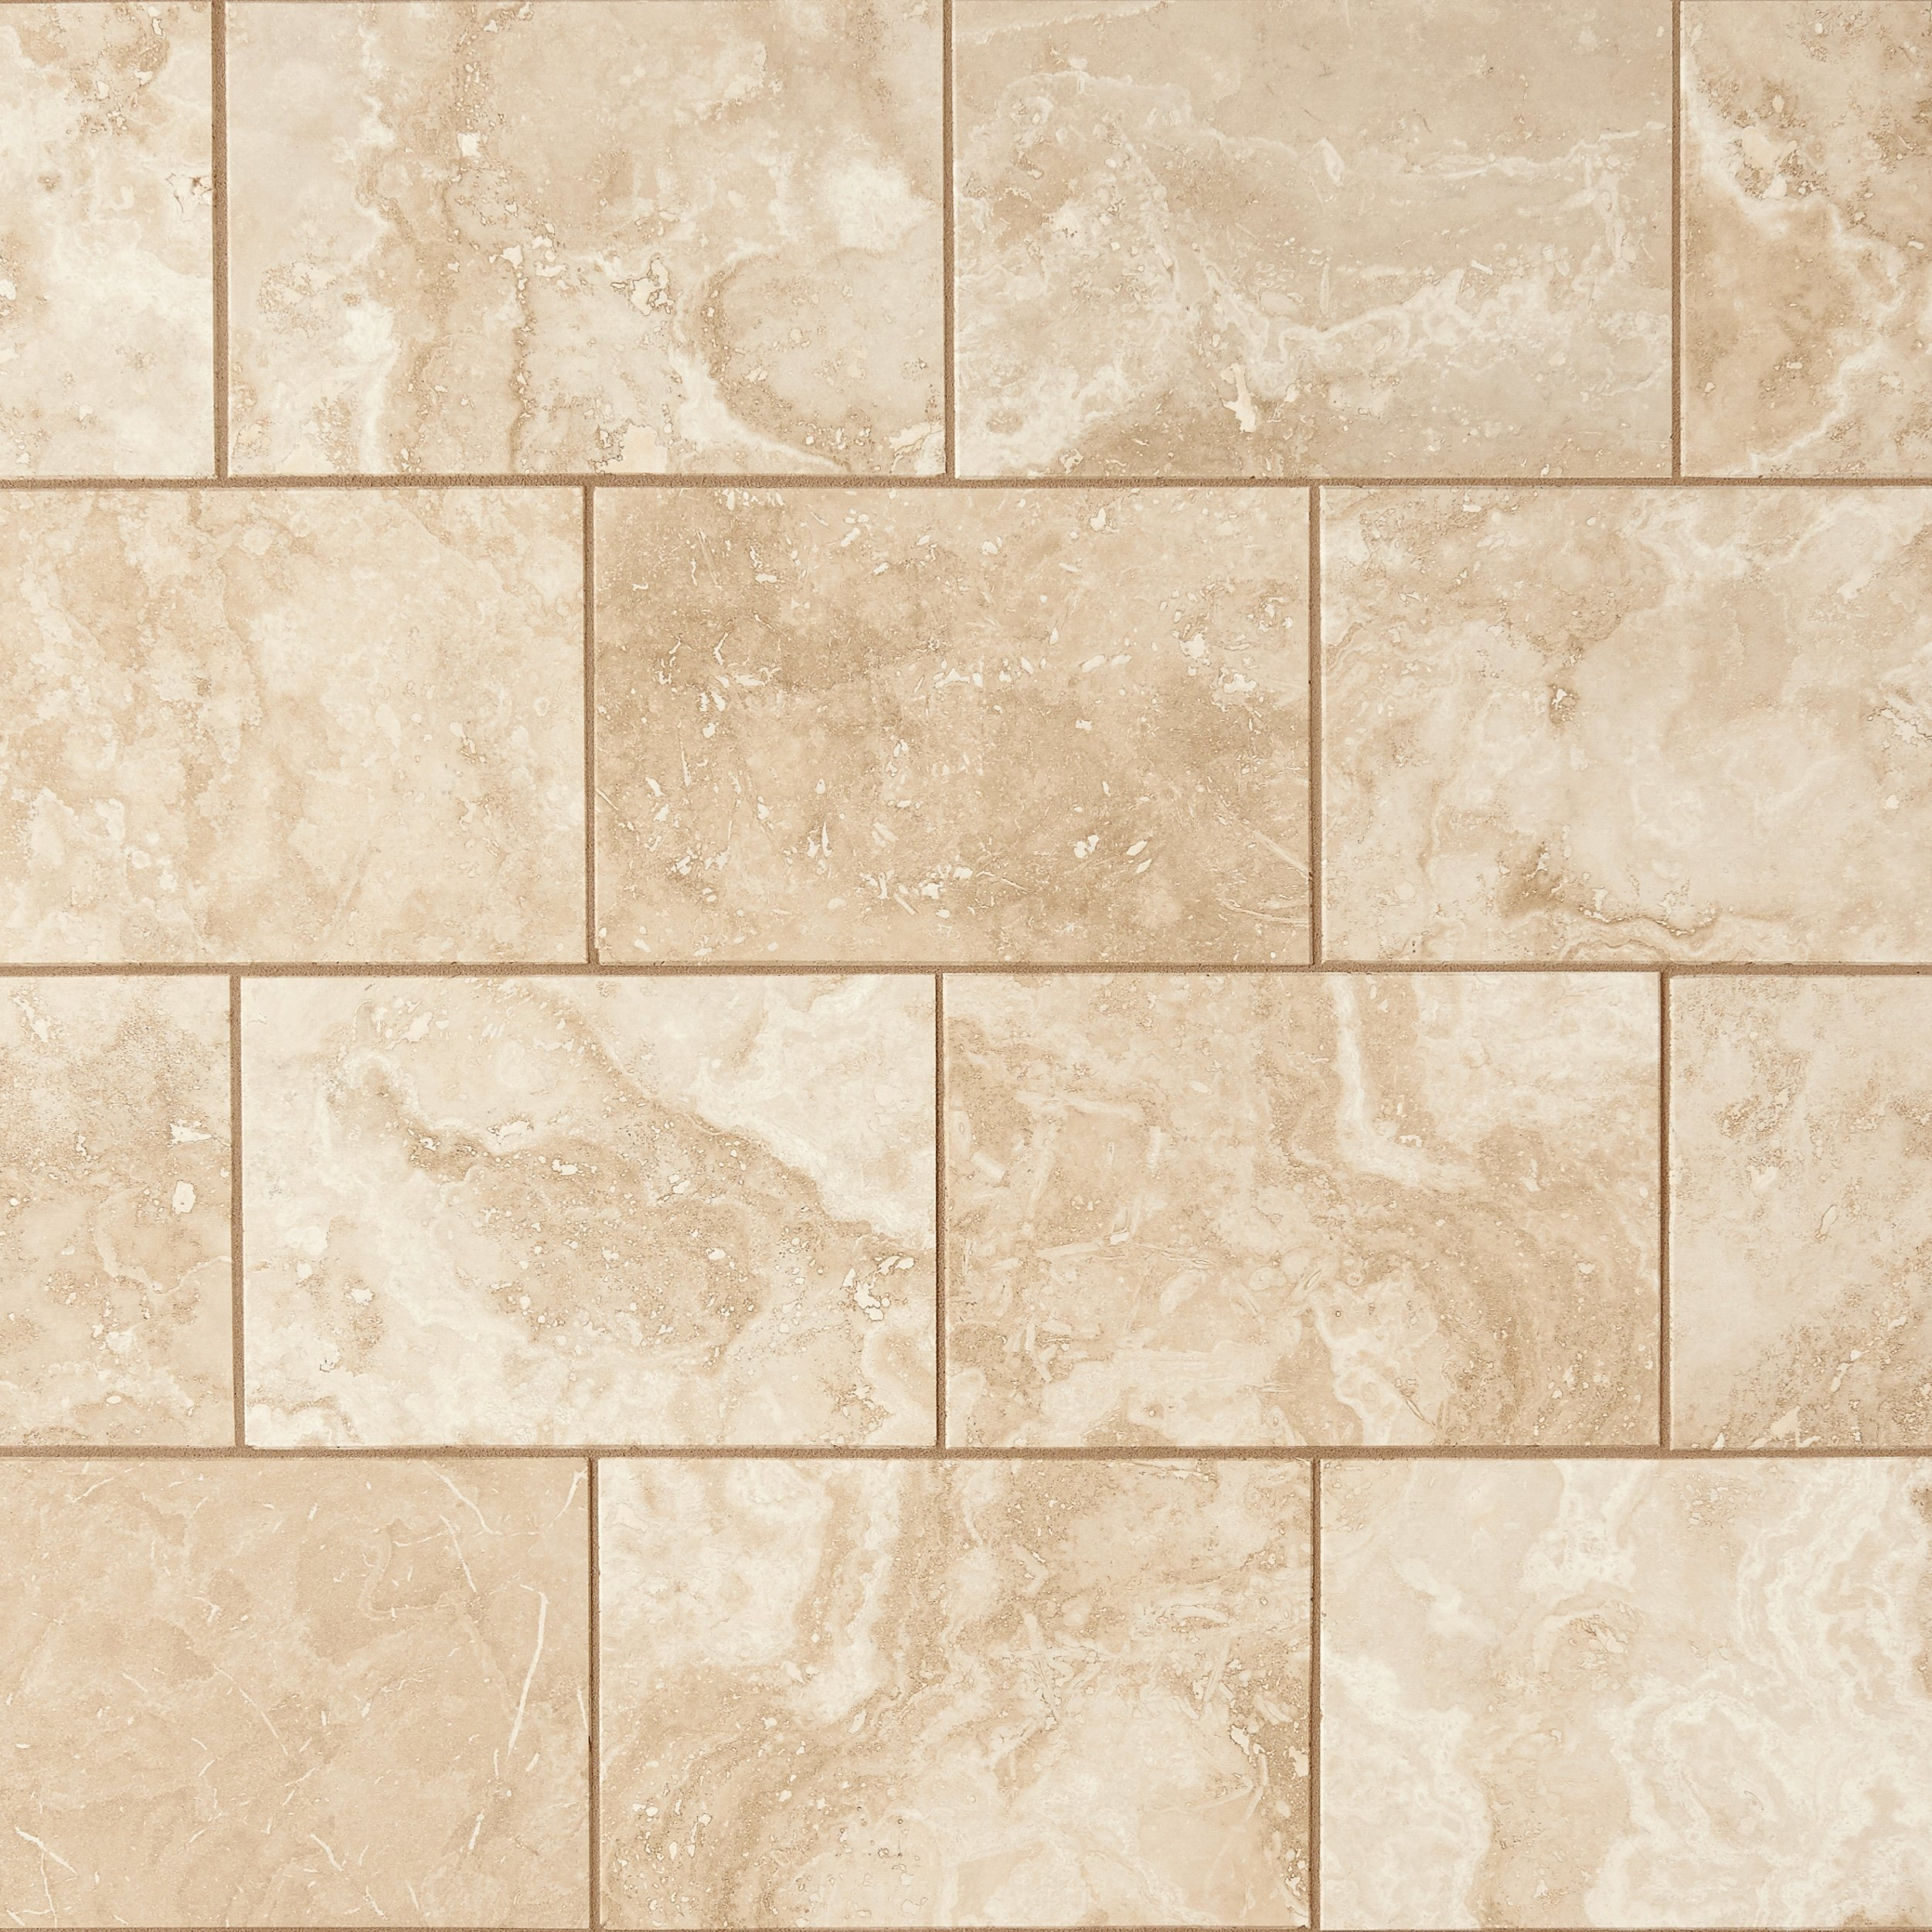 Perla beige polished travertine tile